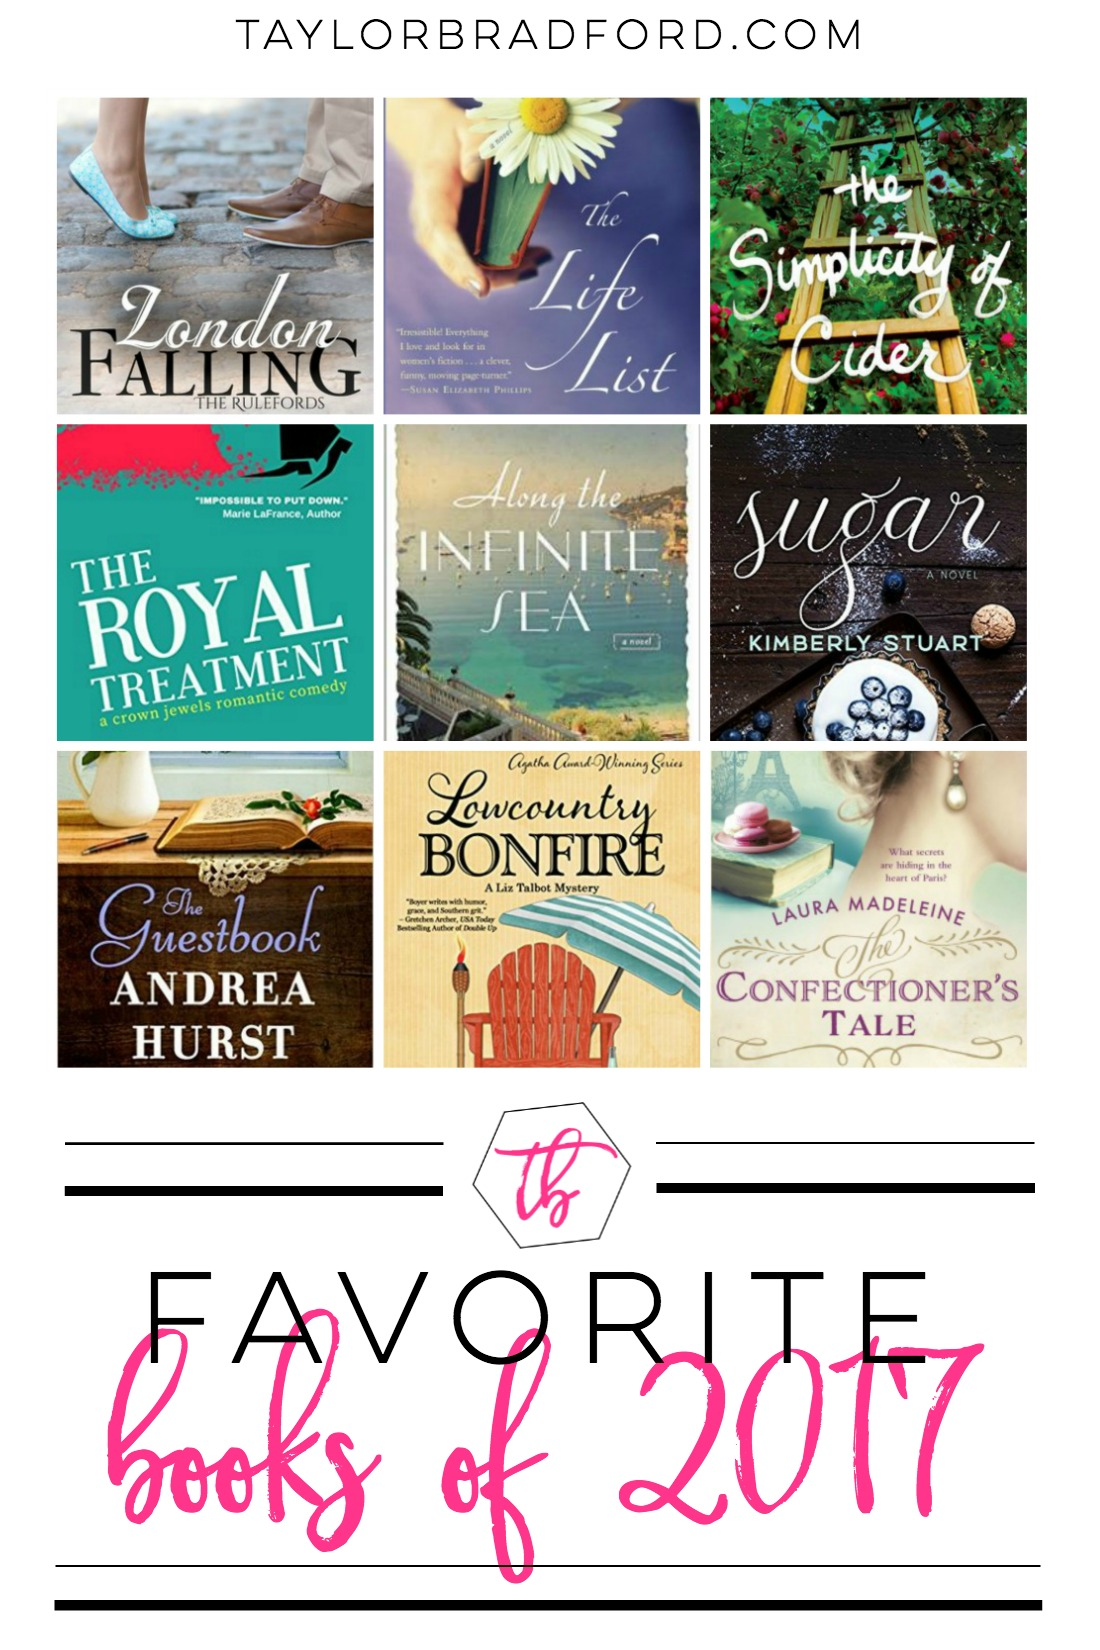 Check out what made the list for my all-time favorite books of 2017! So many good picks this year and thus a lot of favorites!